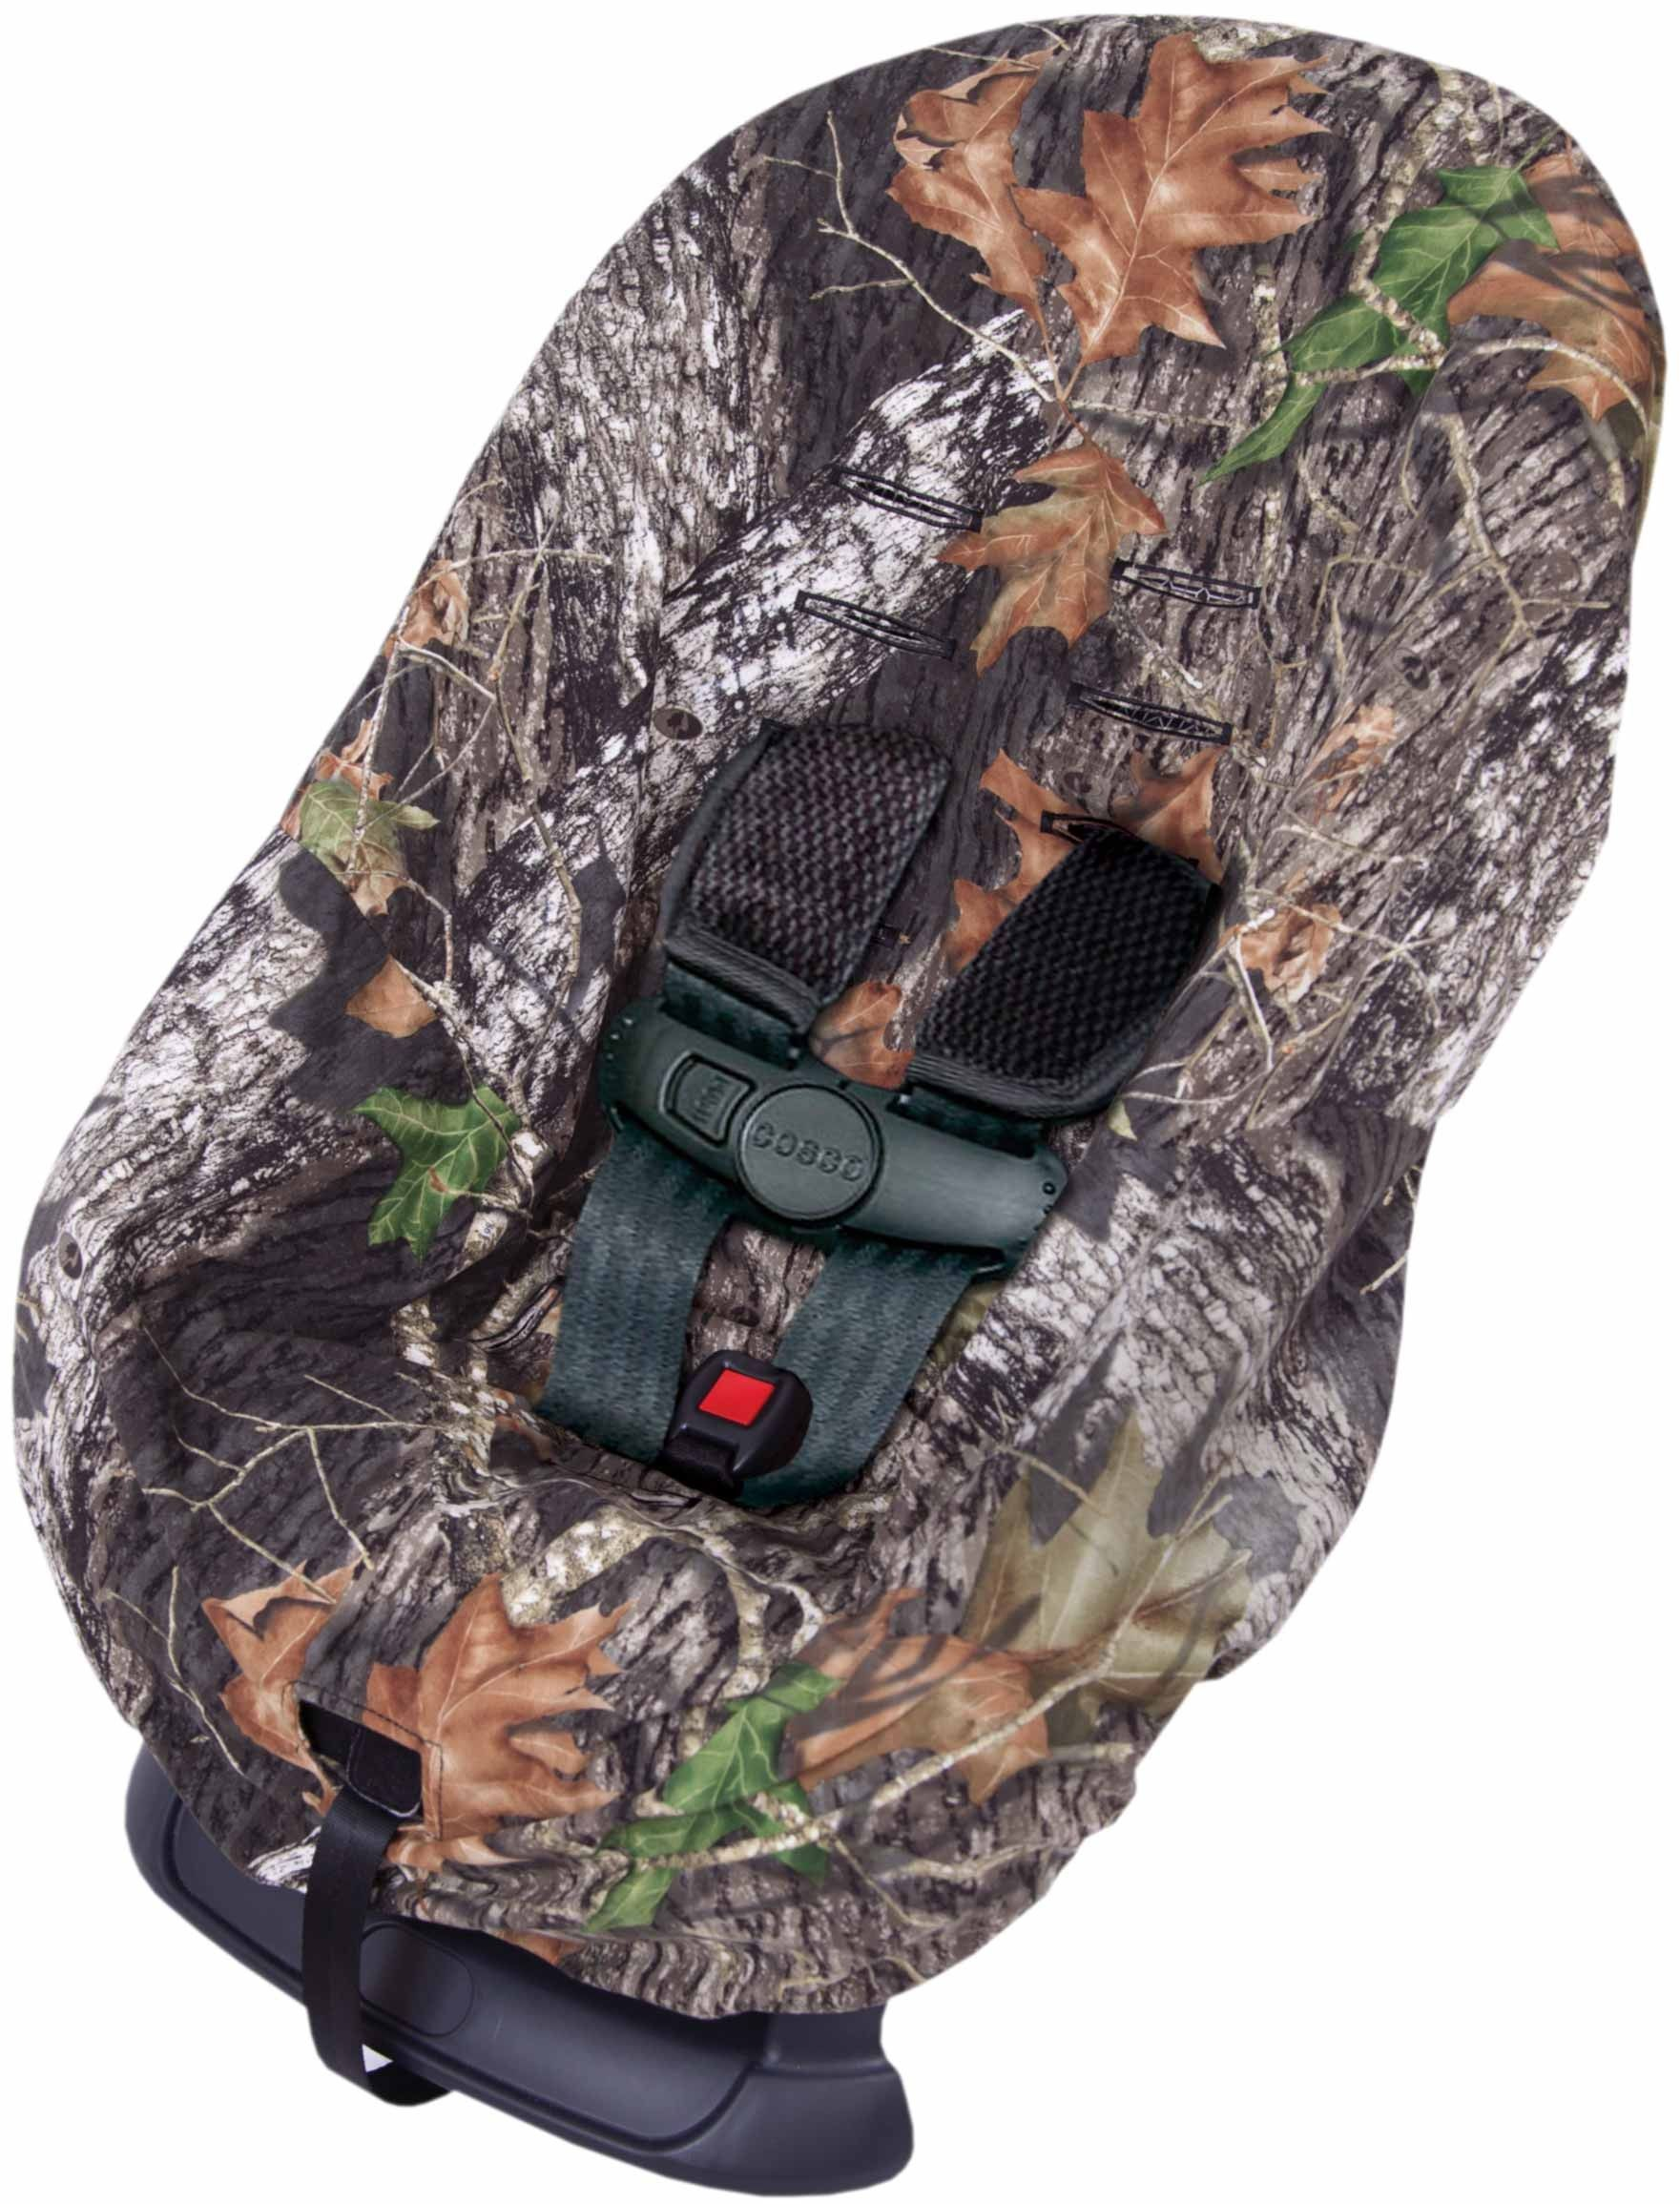 Camo Infant Baby Car Seat Cover